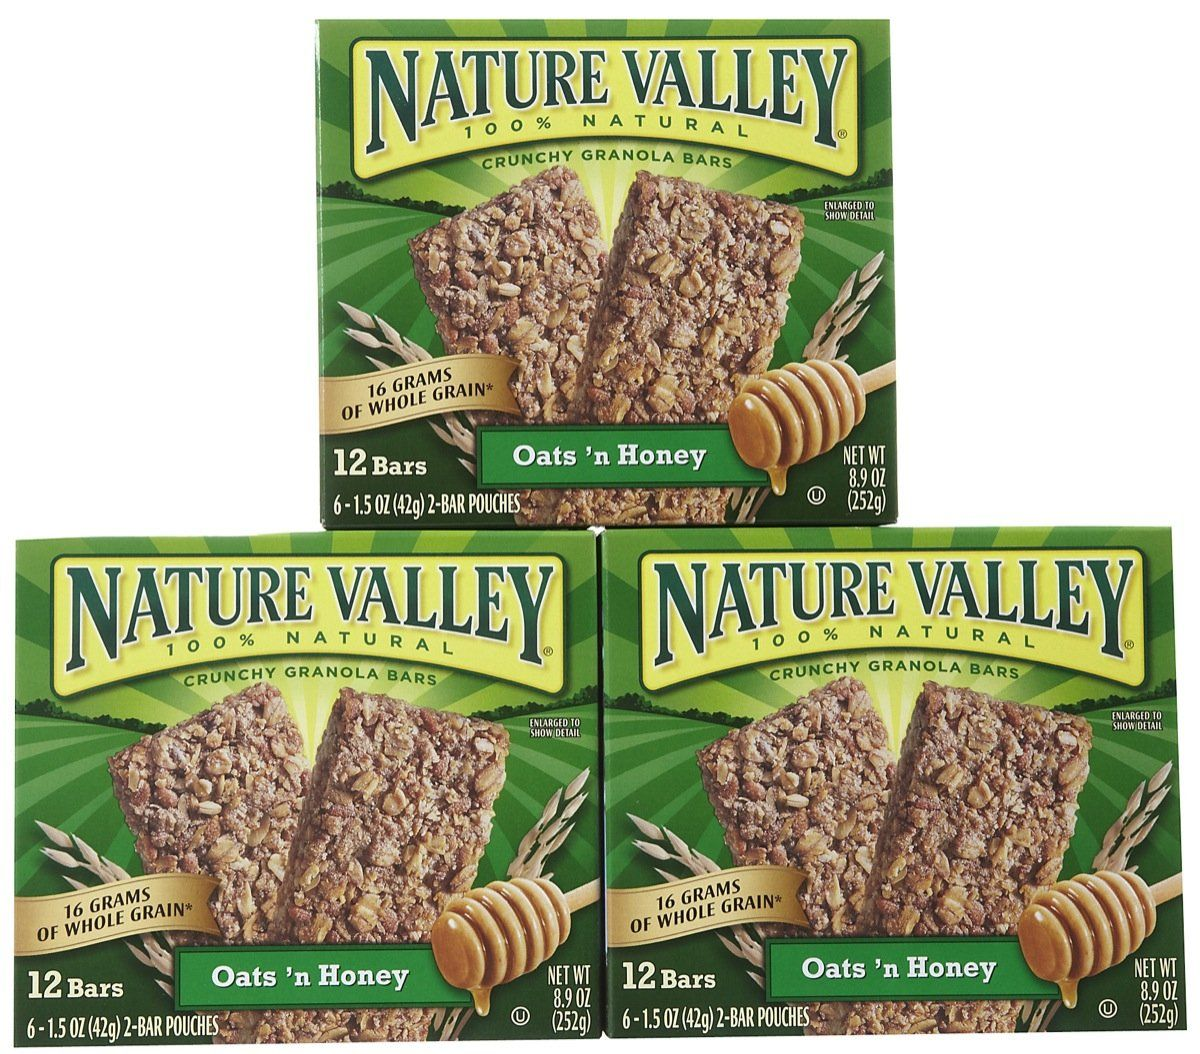 Nature Valley Granola Bars Put Them In The Microwave For 30 Seconds It S Magica Nature Valley Crunchy Granola Bars Natural Valley Granola Bars Crunchy Granola